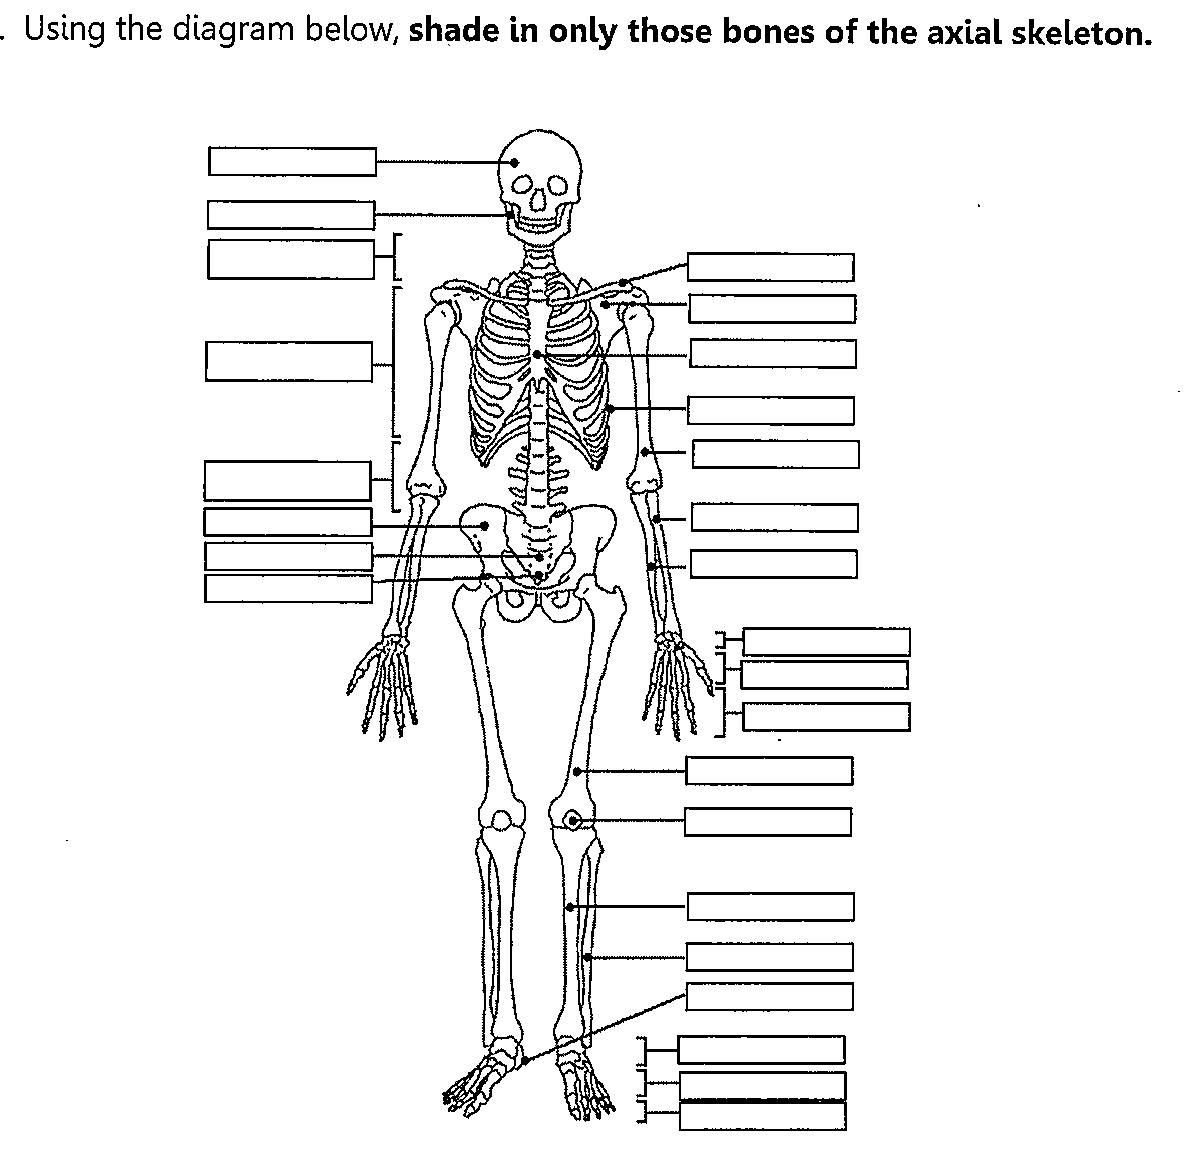 Blank Bone Worksheets Skeletal System Fill In the Blank Worksheets